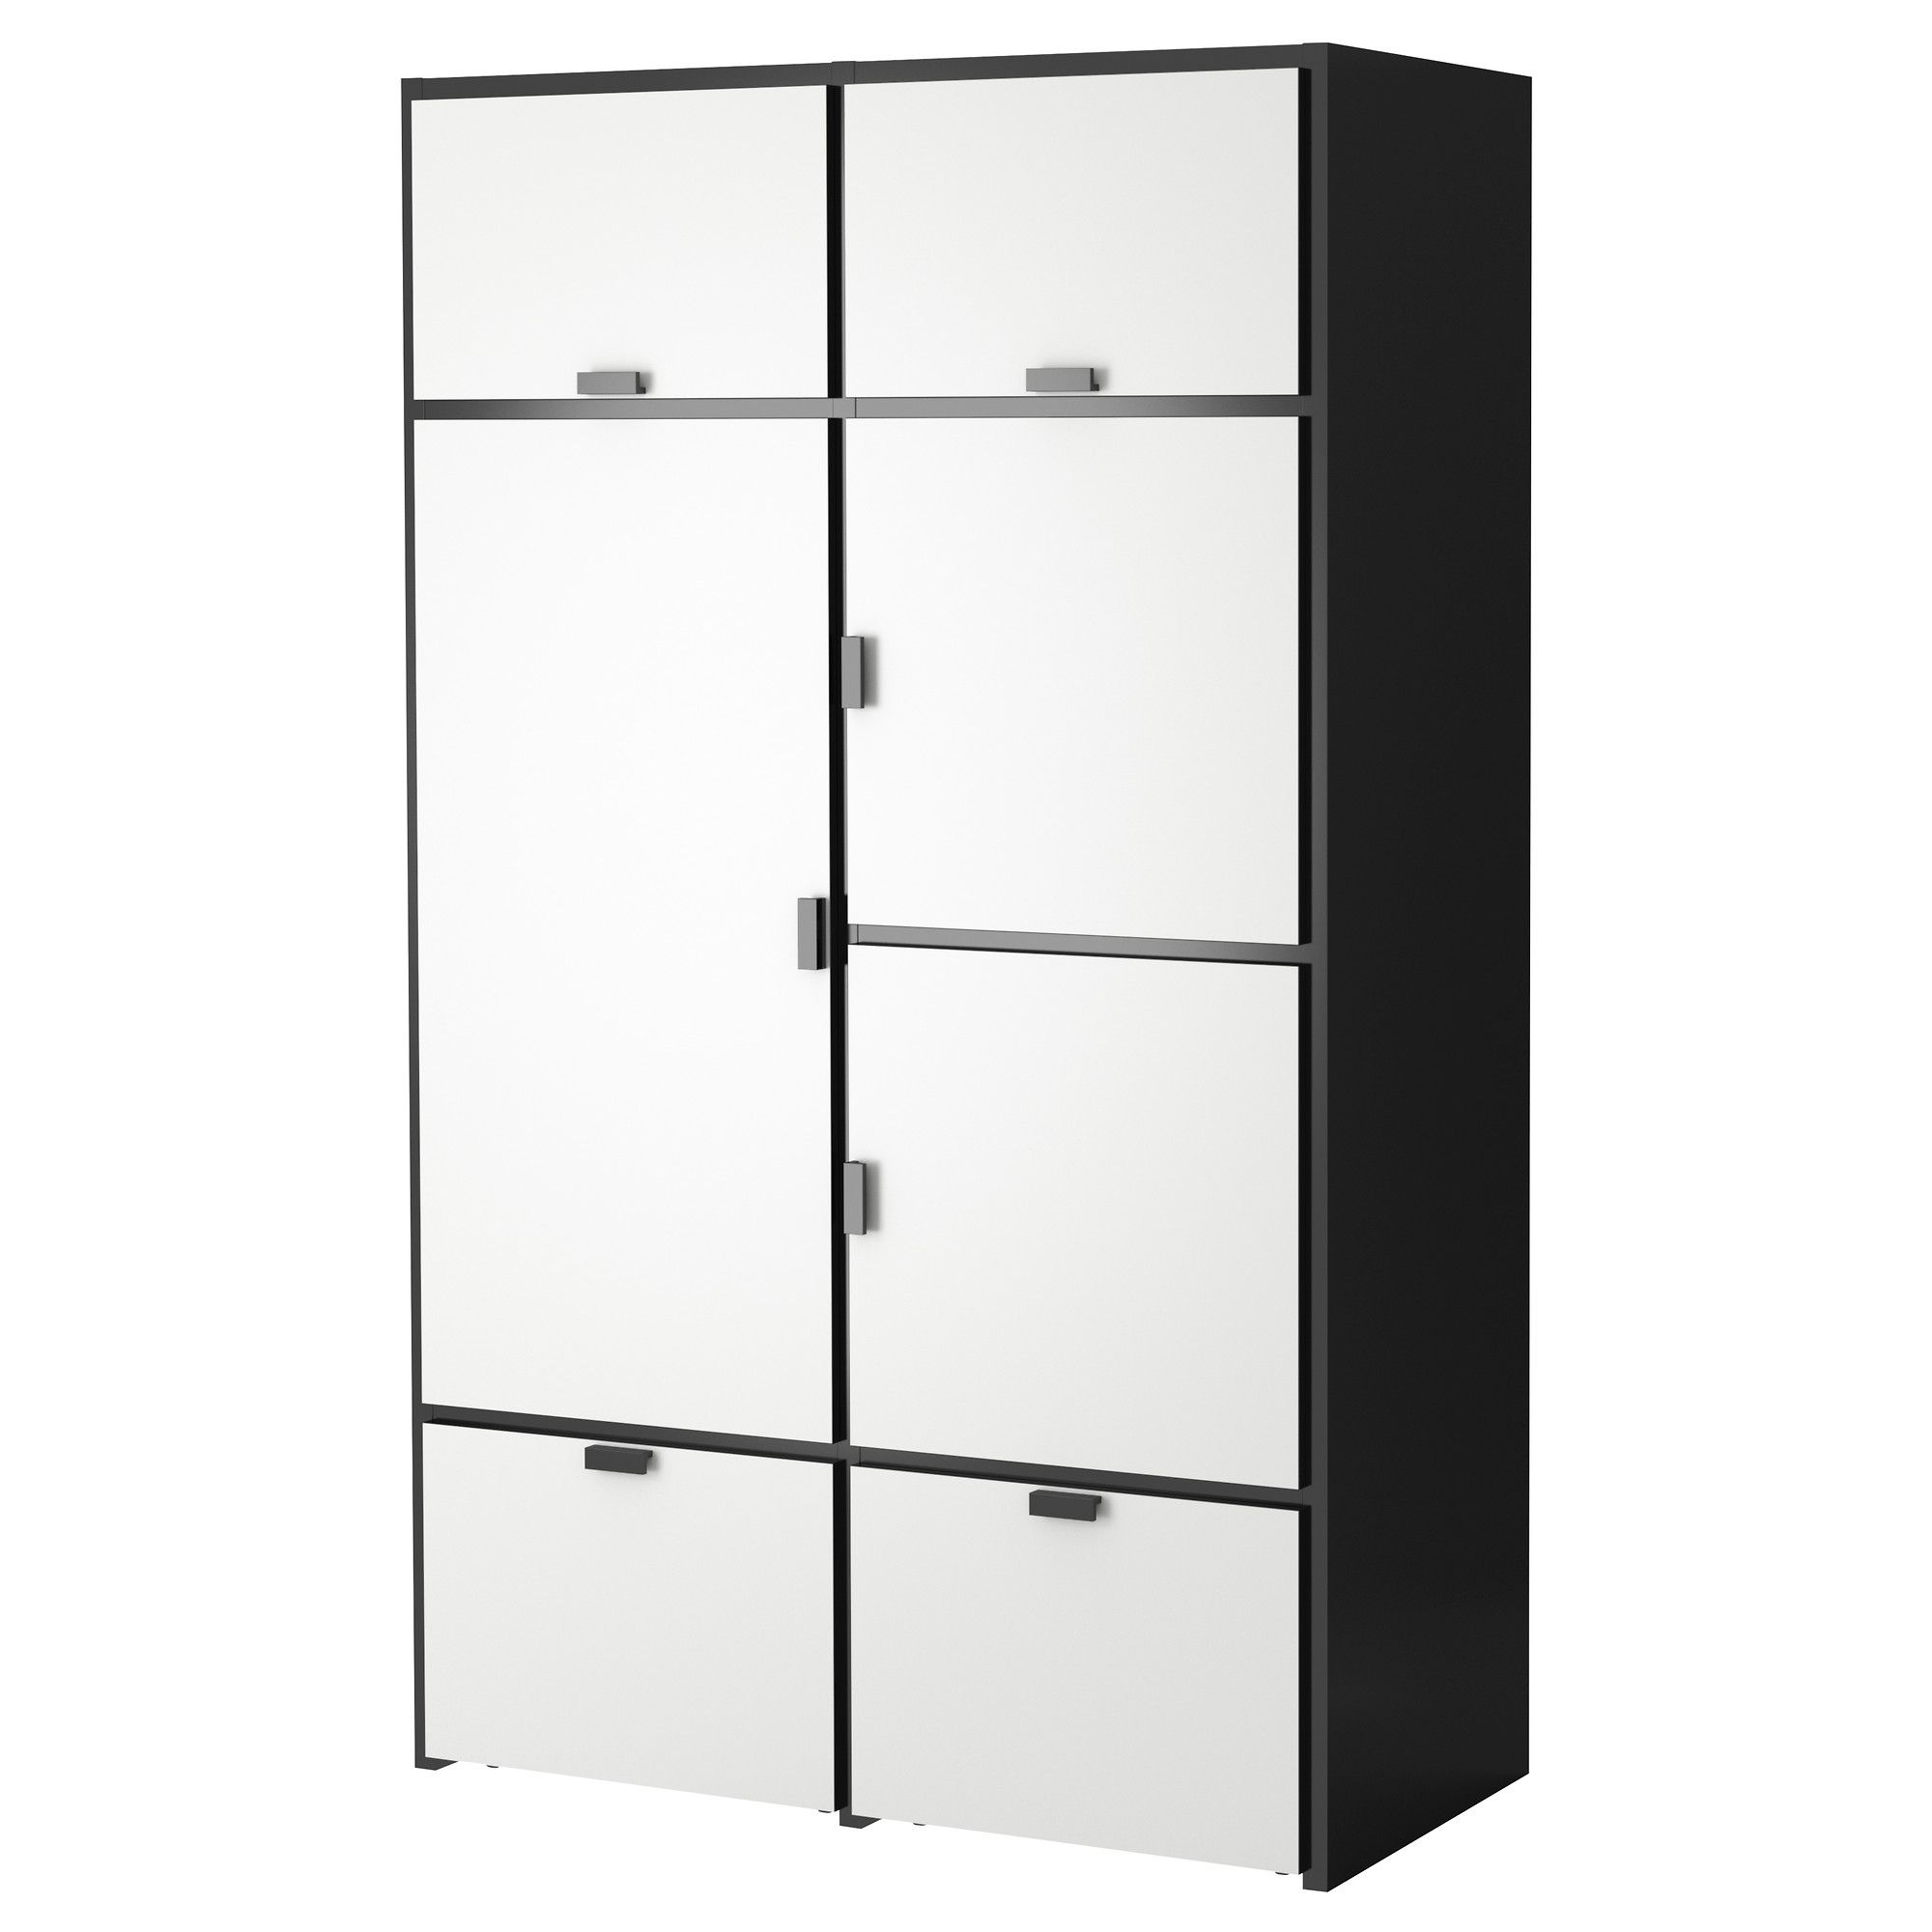 Ikea Kleiderschrank Dombas Us Furniture And Home Furnishings For The Home Ikea